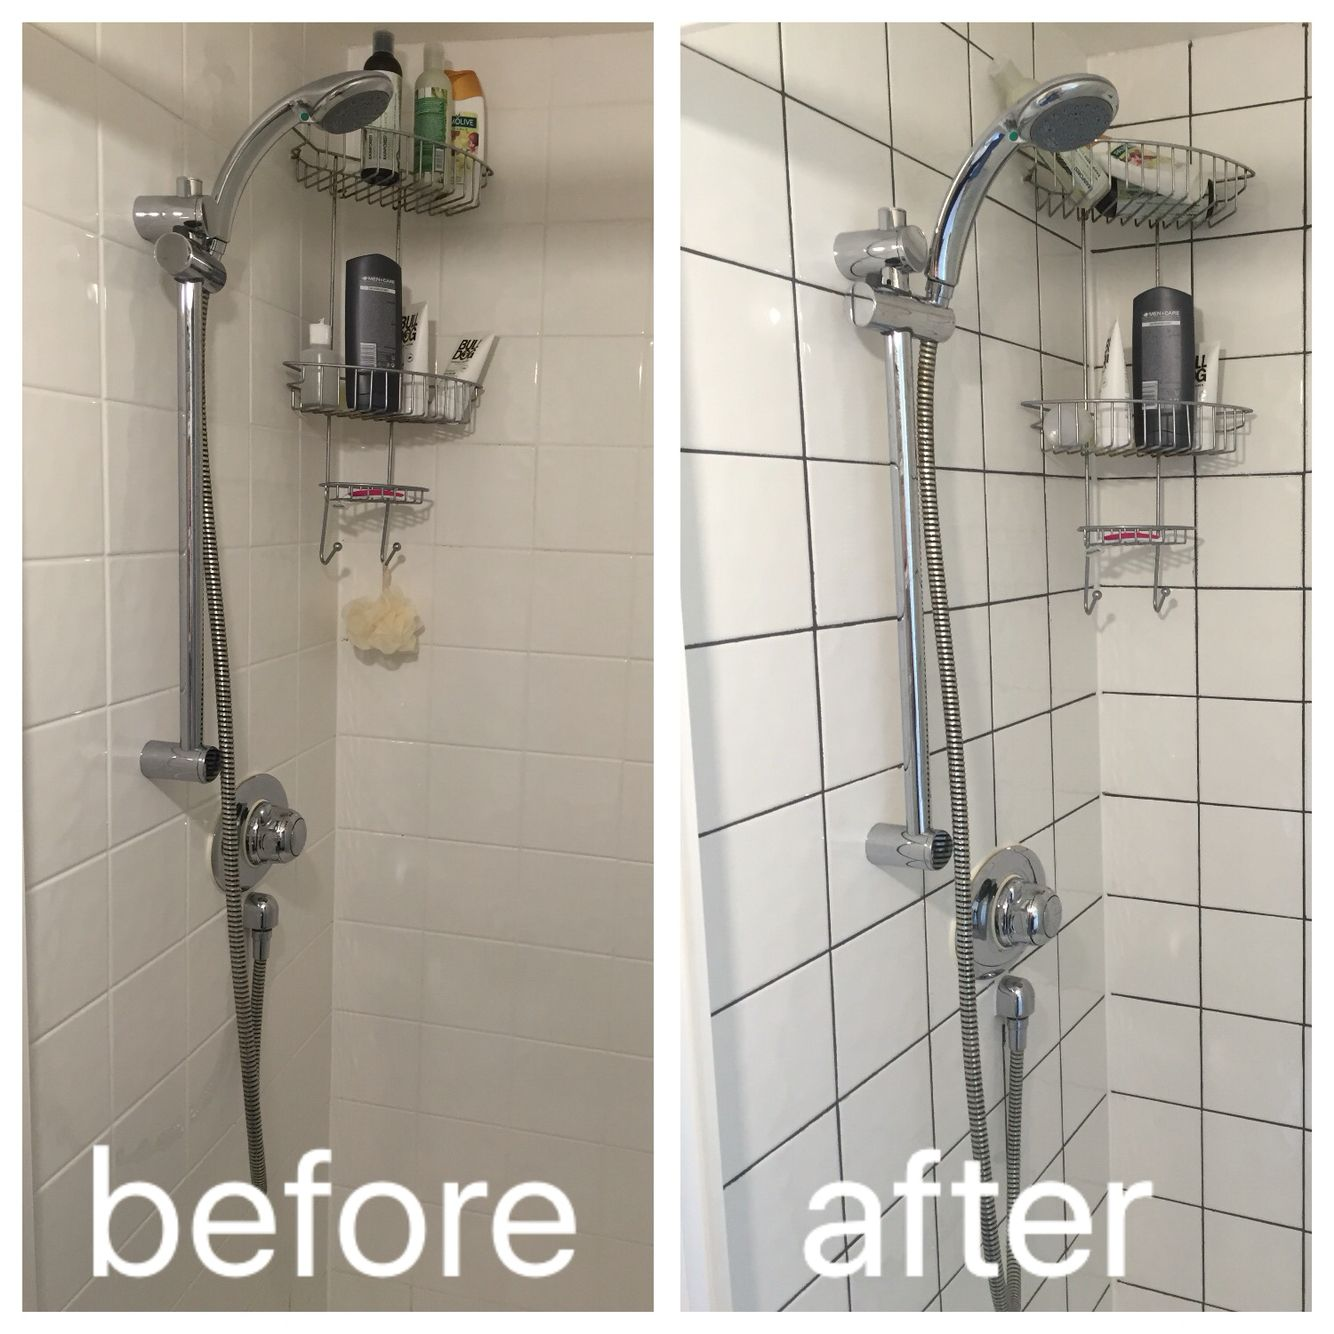 Regrouting with dark grey grout to modernise a boring shower regrouting with dark grey grout to modernise a boring shower working with current square tiles and adding on in shower dailygadgetfo Images